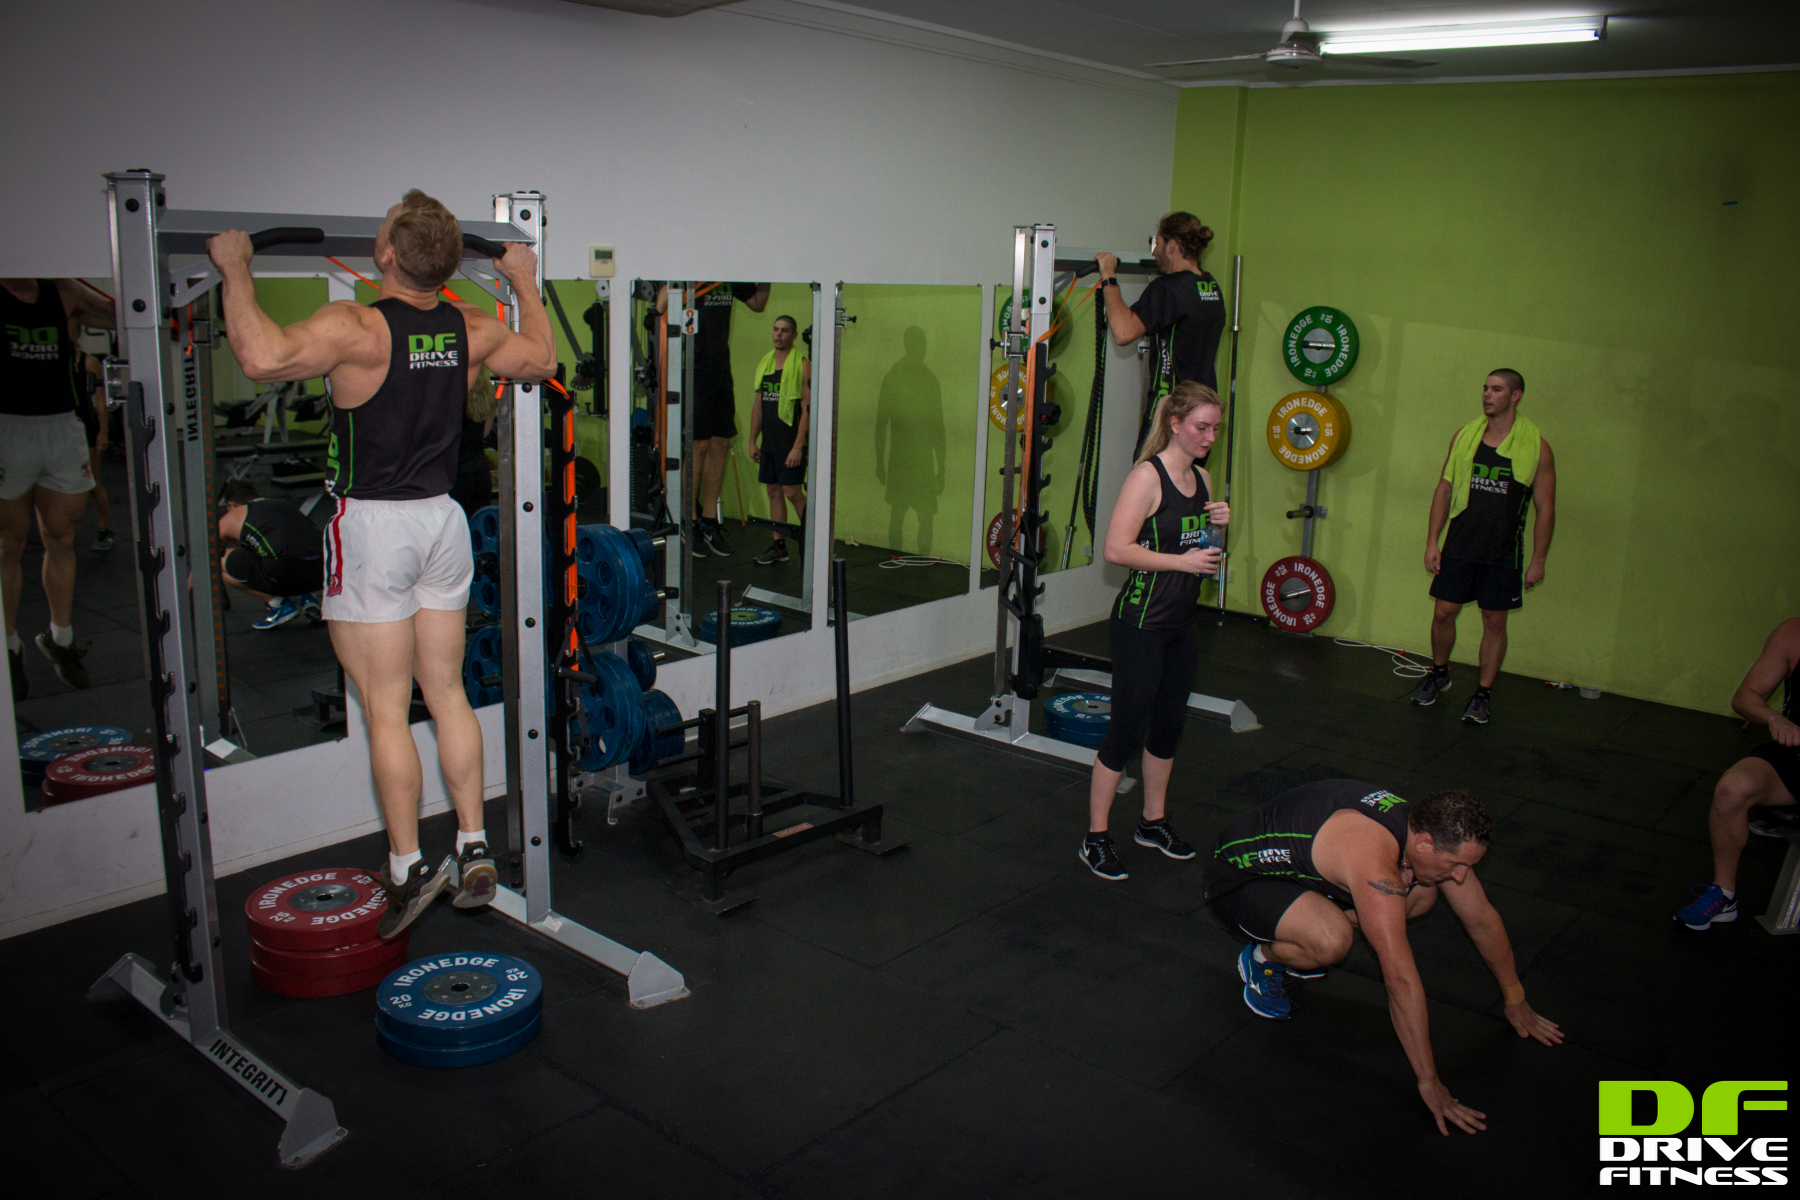 Drive-Fitness-personal-training-brisbane-christmas-workout-2017 (31 of 54).jpg